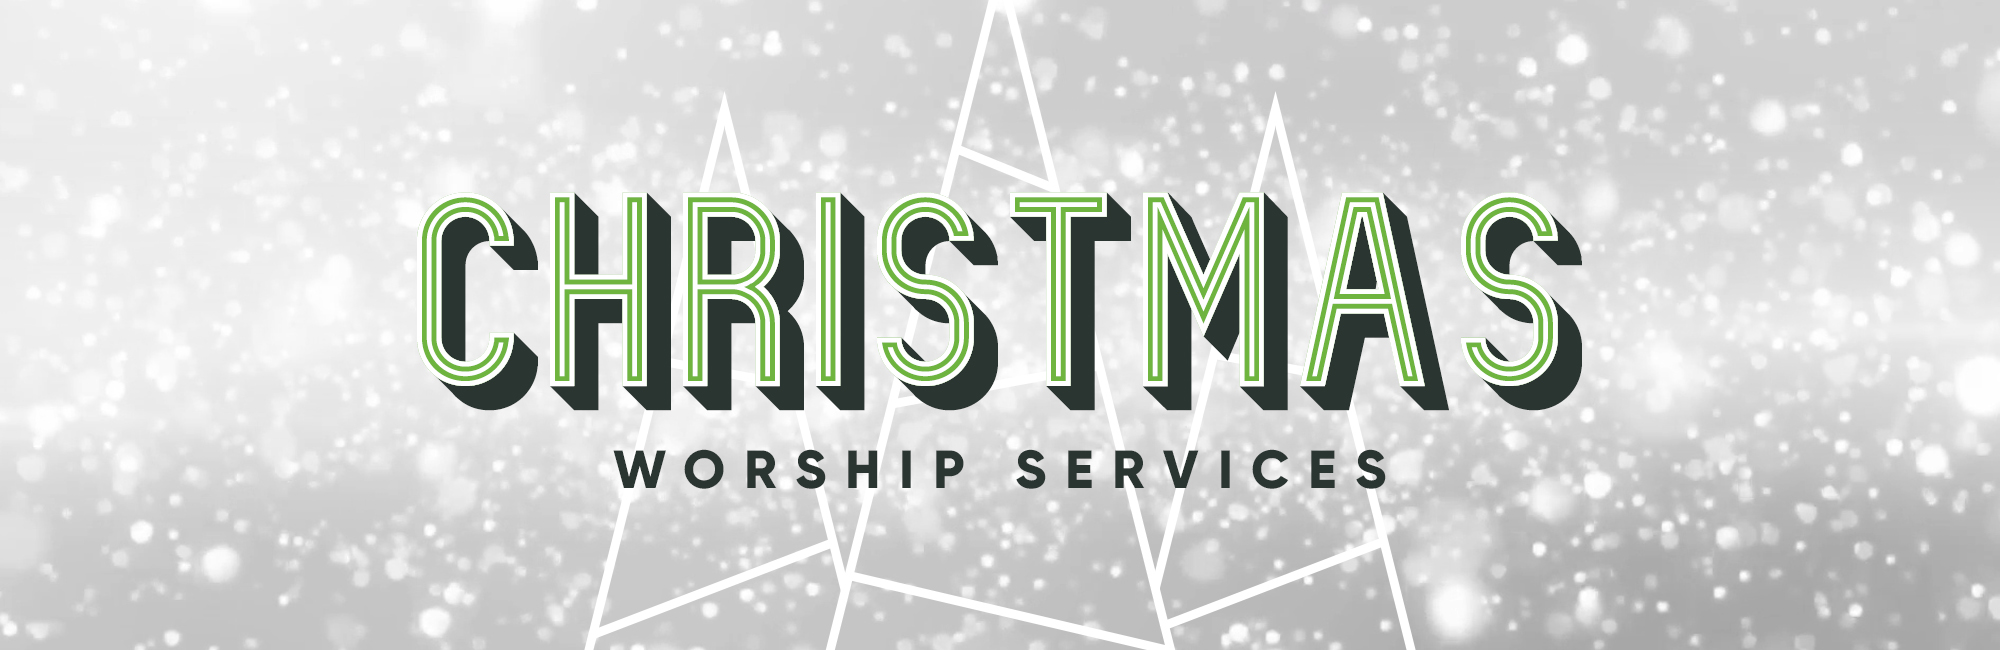 Christmas Services - Web Header